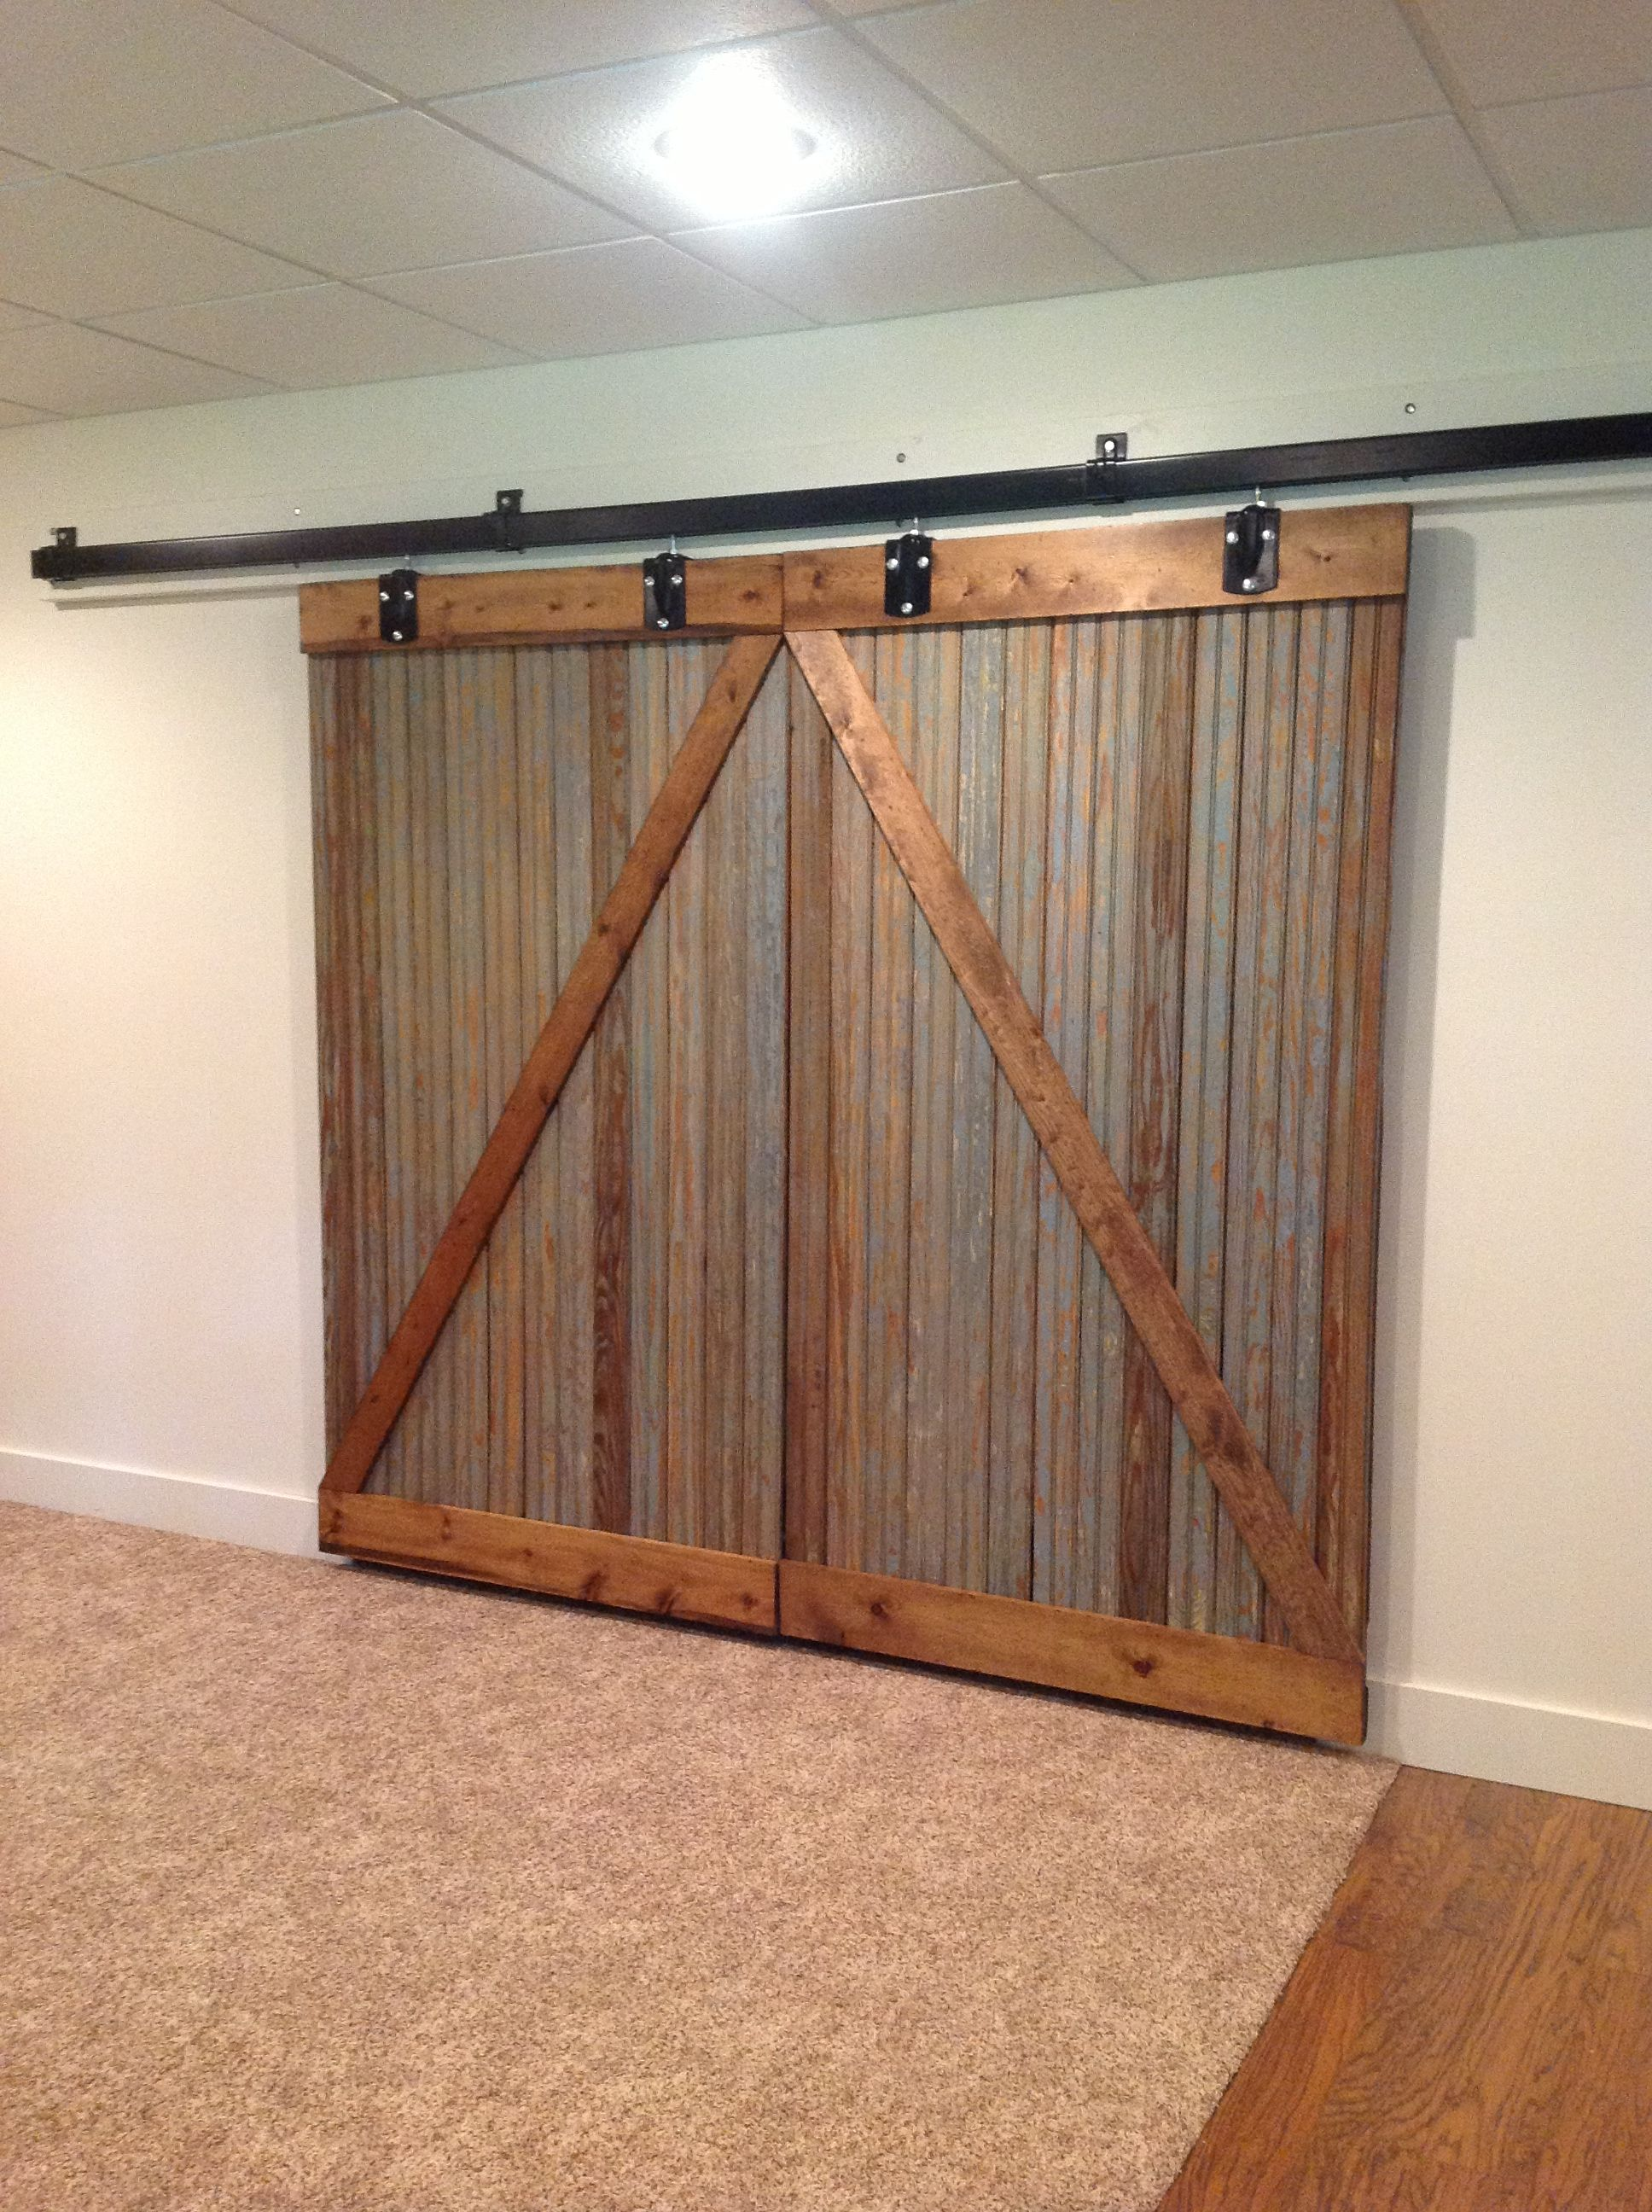 Barn Doors Nice Way To Hide The Furnace Room But Still Be Able To